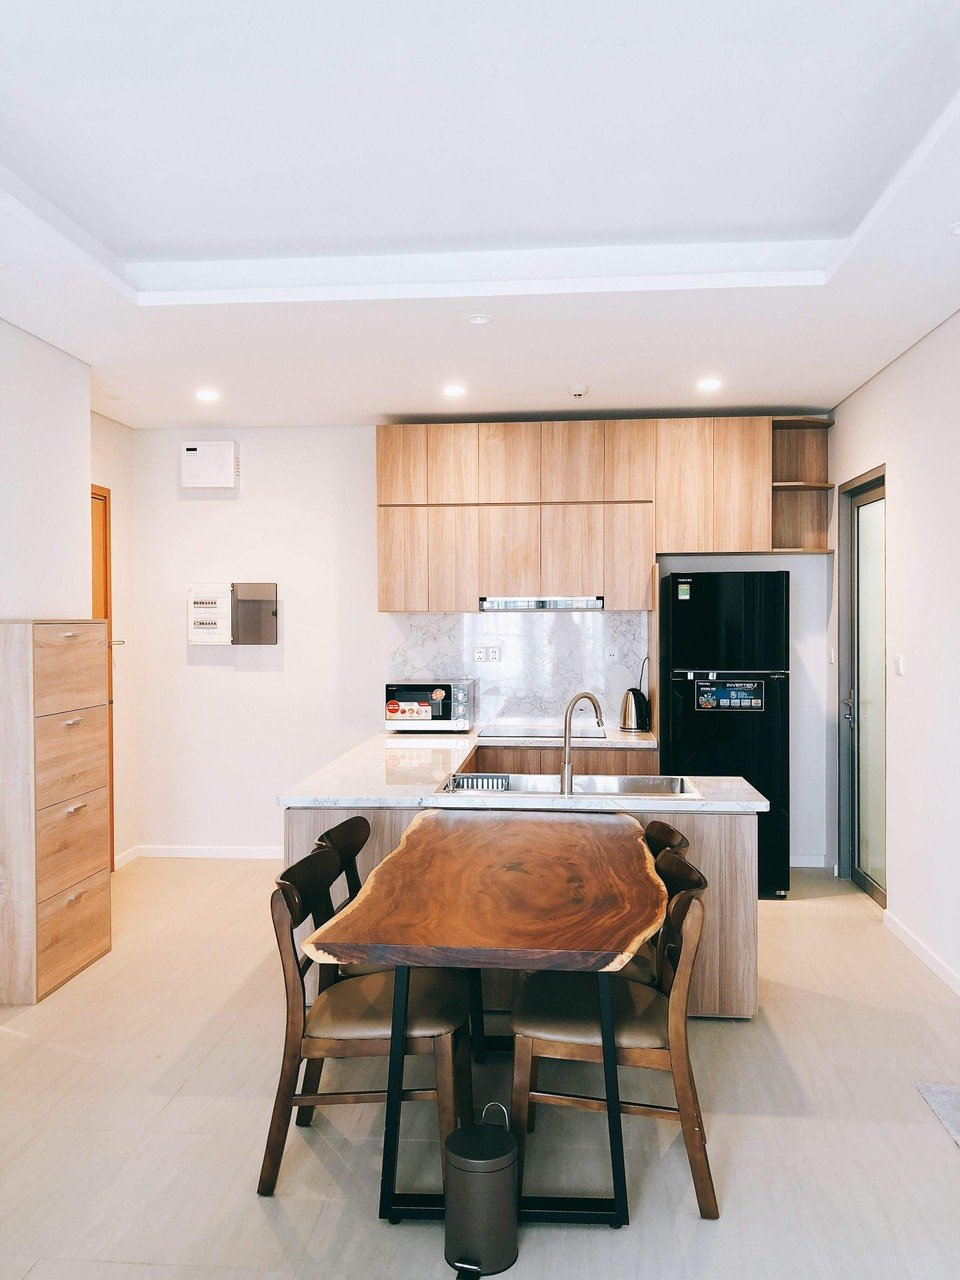 DI1008 - Diamond Island Apartment For Rent & Sale in Ho Chi Minh City - 2 bedroom